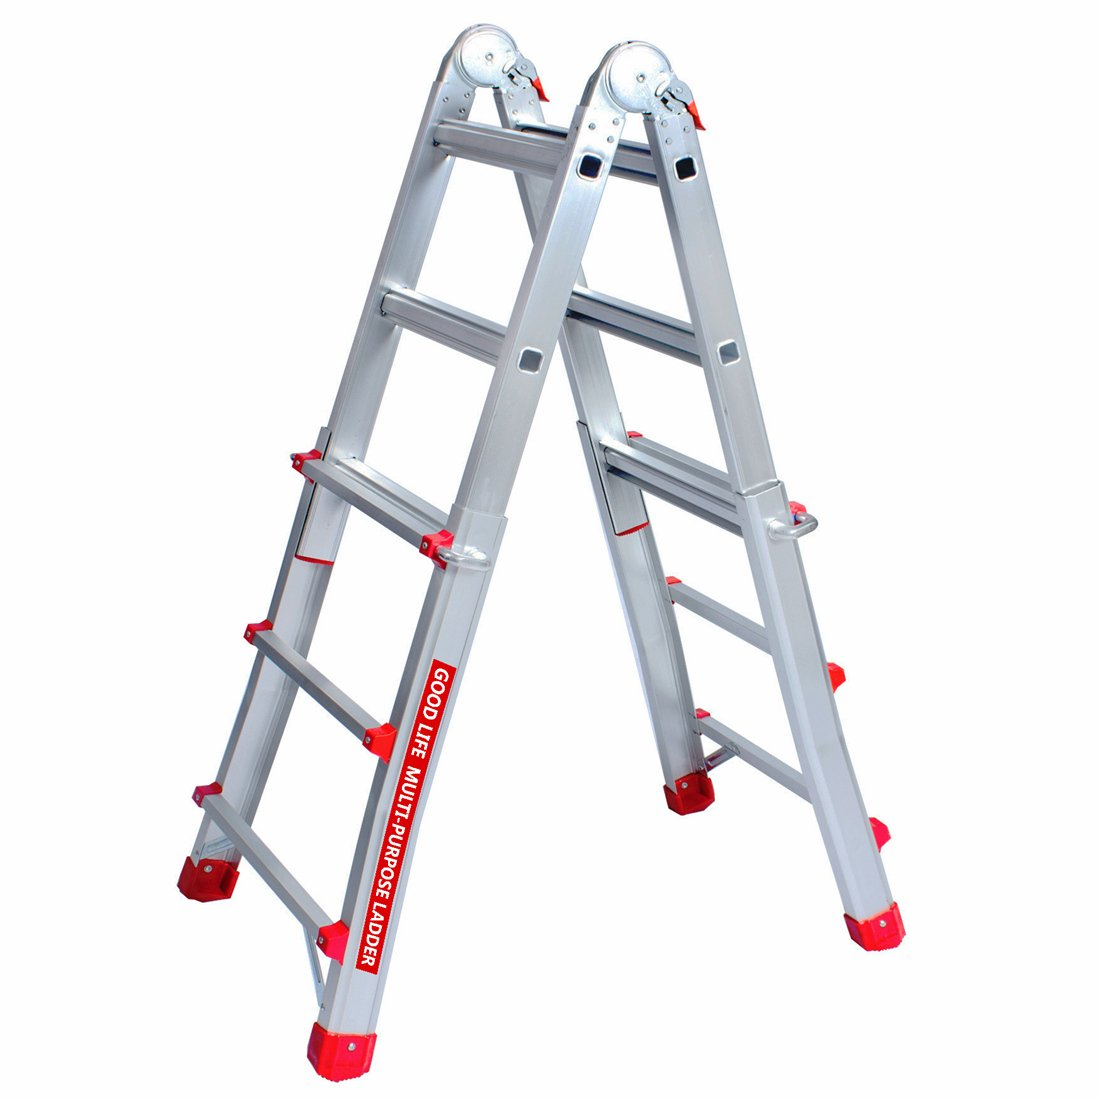 GOOD LIFE EN131 3X4 Step 9.5 FT Telescoping Multi-Ladder Aluminum Extension Adjustable & Folding Multi-Use Multi-Position Ladder 300-Pound for Home HMI475